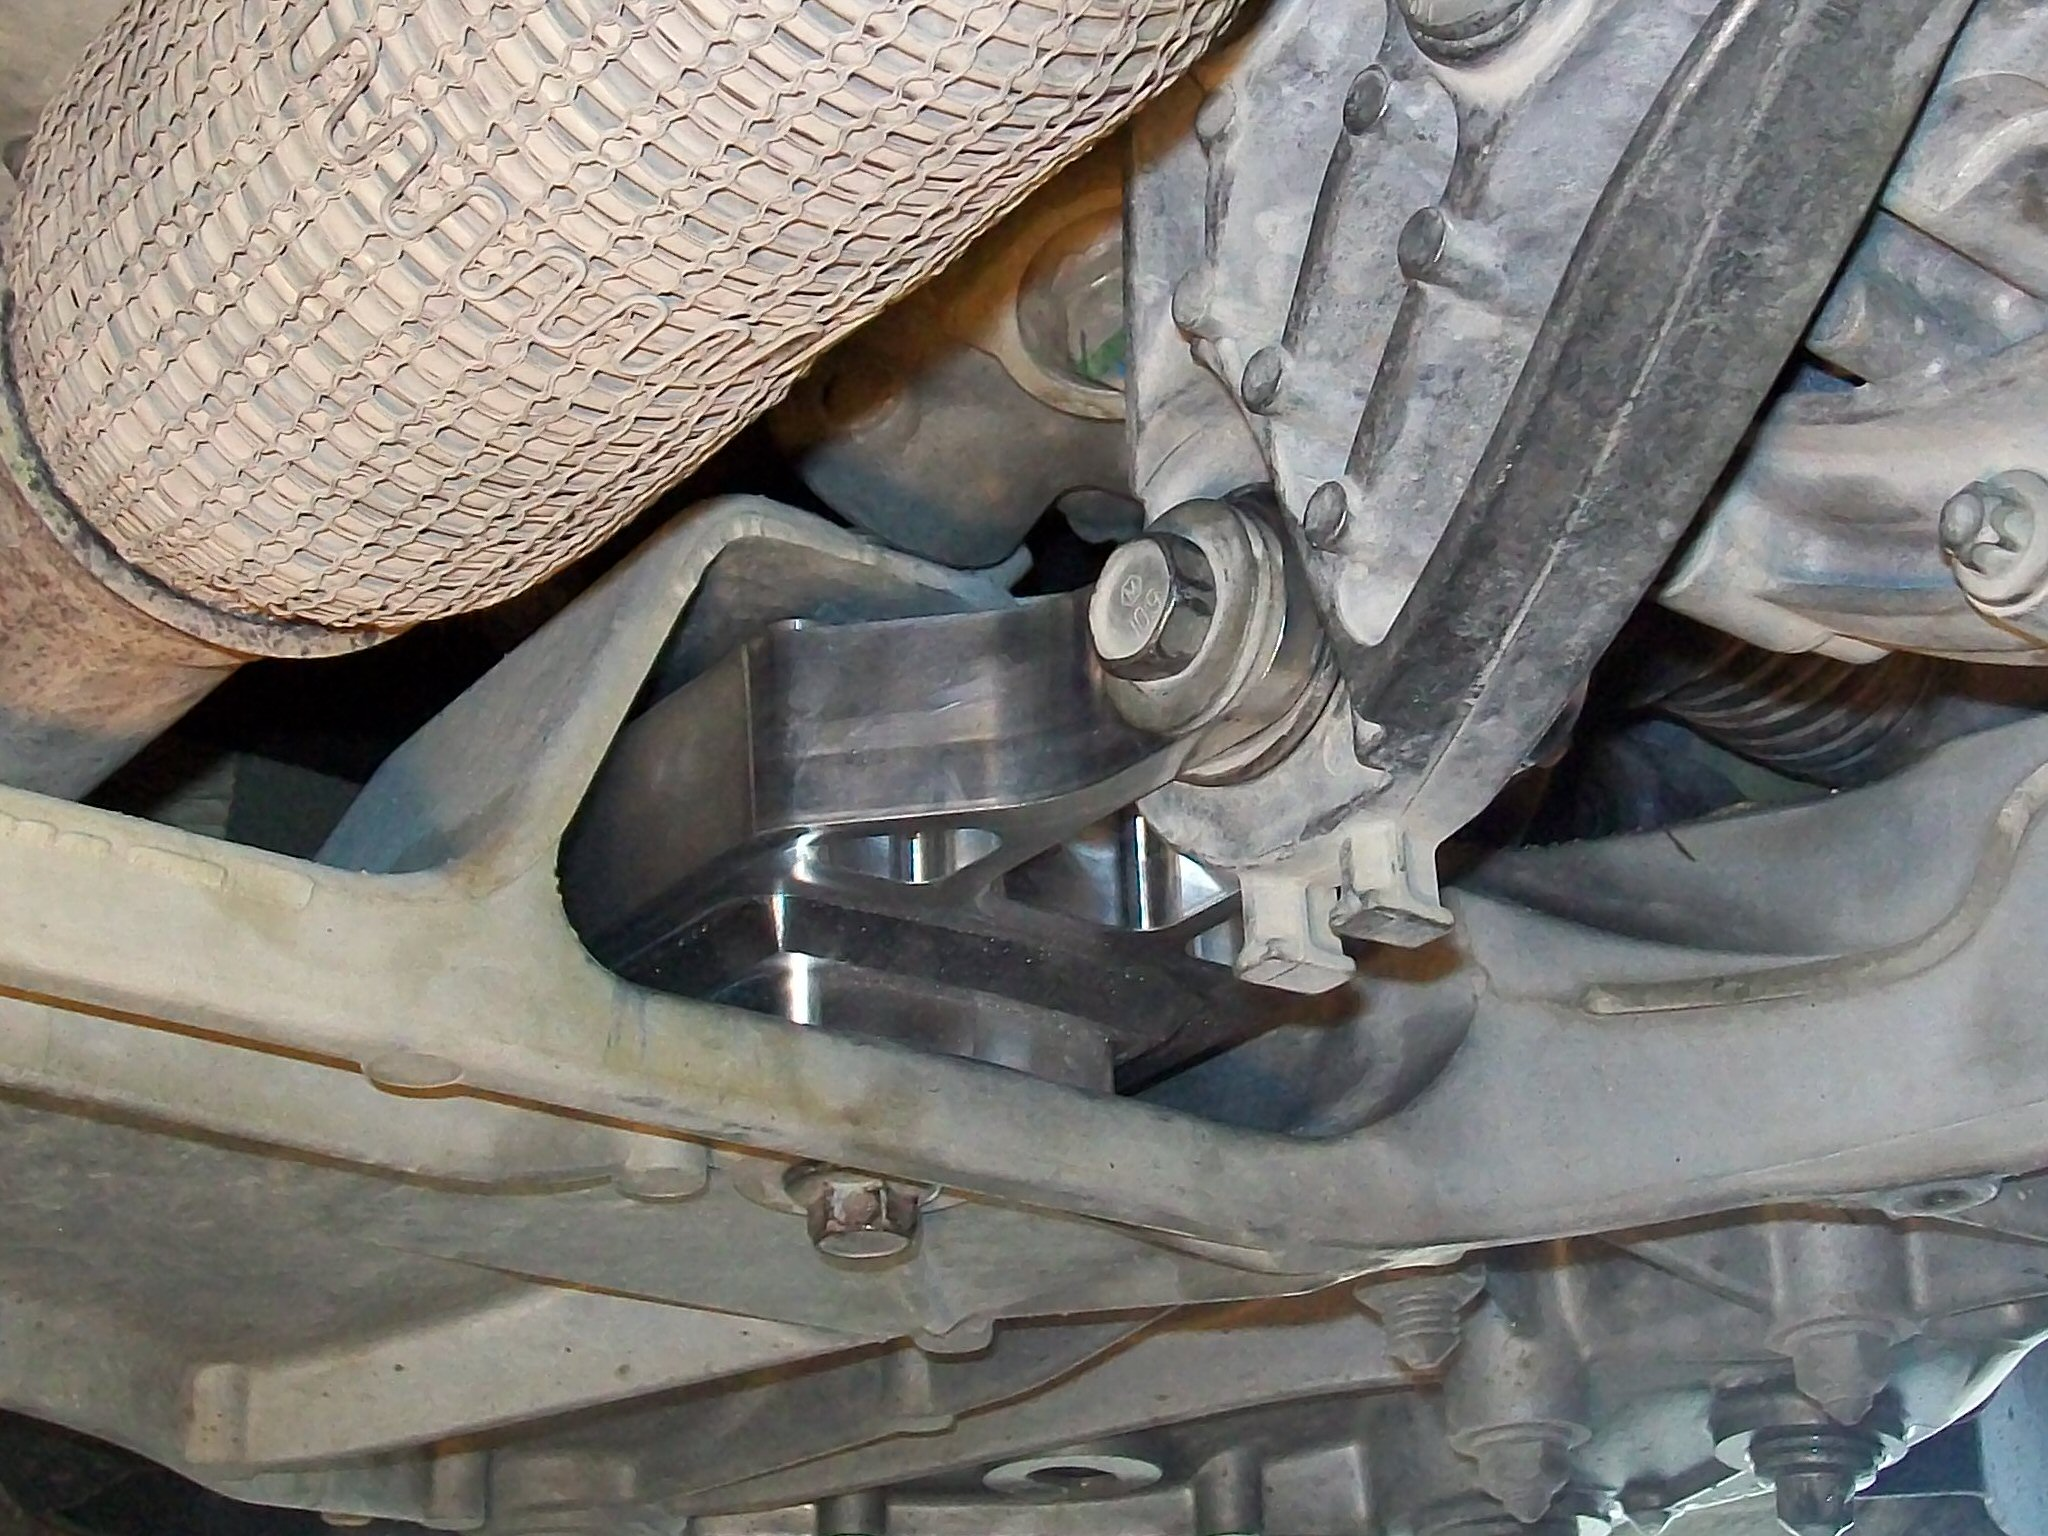 The Wait Is Over Solid Billet Aluminum Rear Engine Mount For Dart Dodge Neon Mounts Just Like Poly Replacement We Sell Installation Pretty Straightforward Taking An Hour Or Less And Can Be Done On Ramps Jackstands A Lift